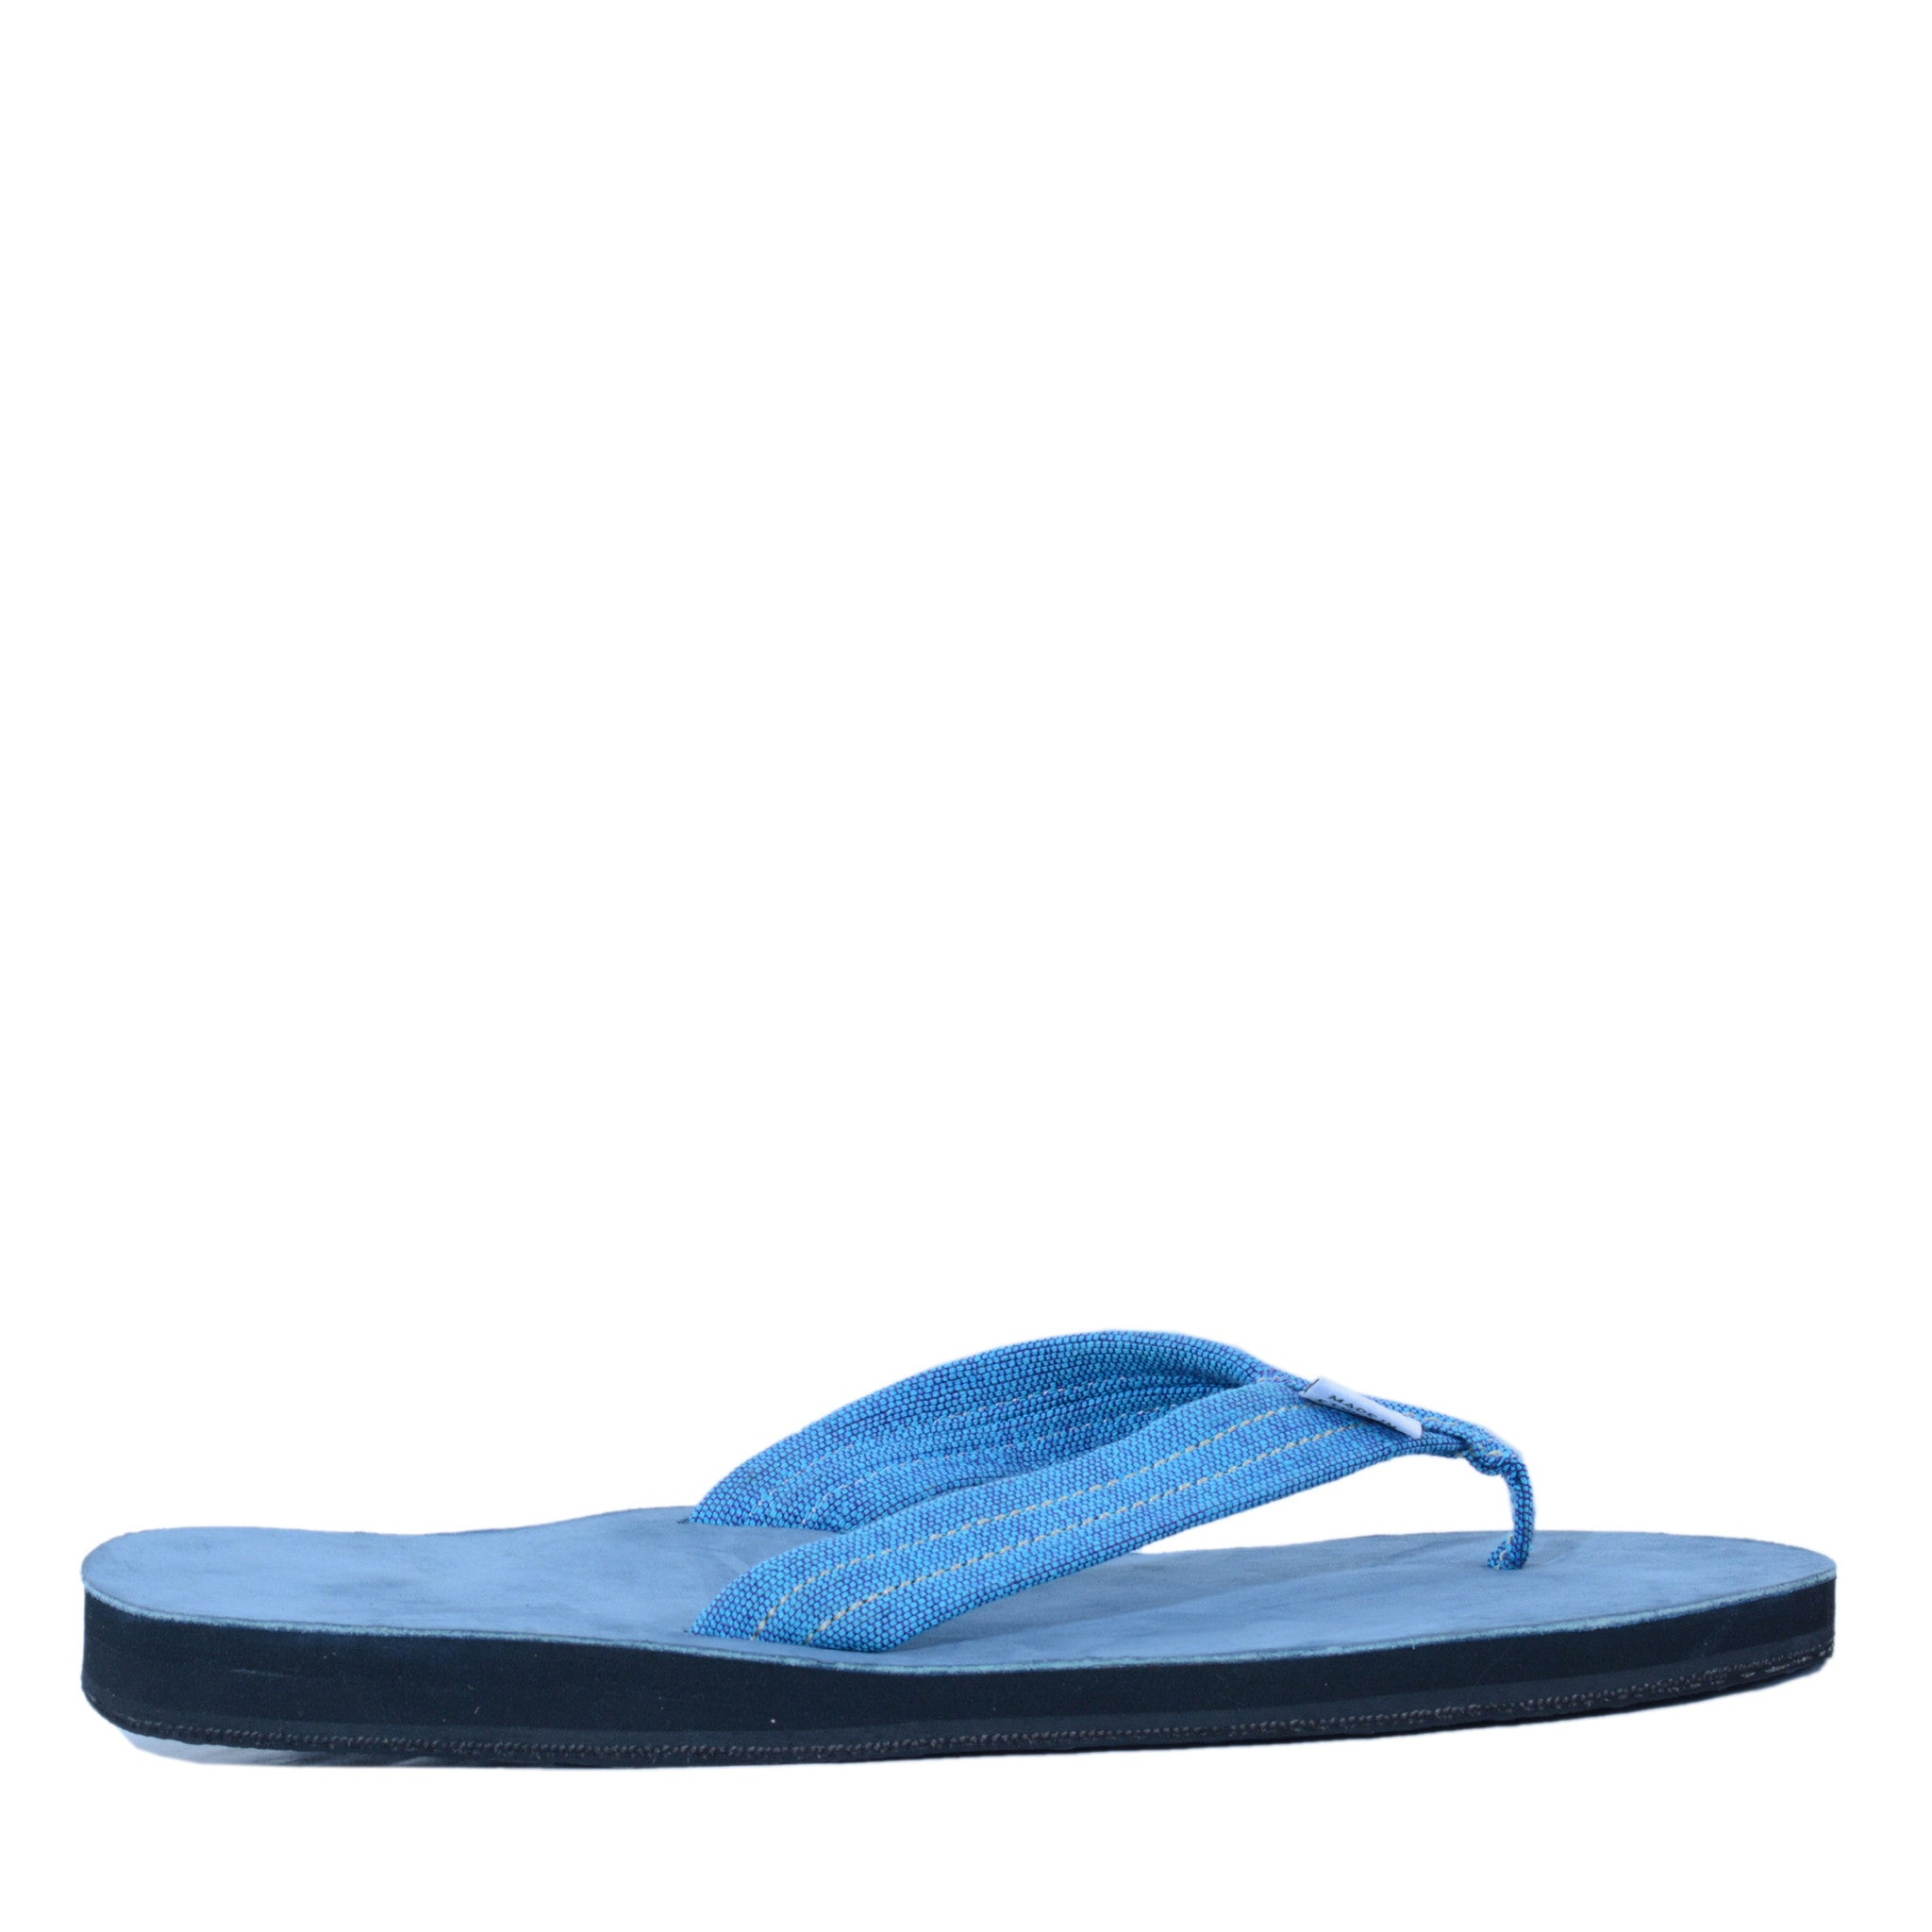 solerebels Light Blue nuDEAL mSh 2 Sandals